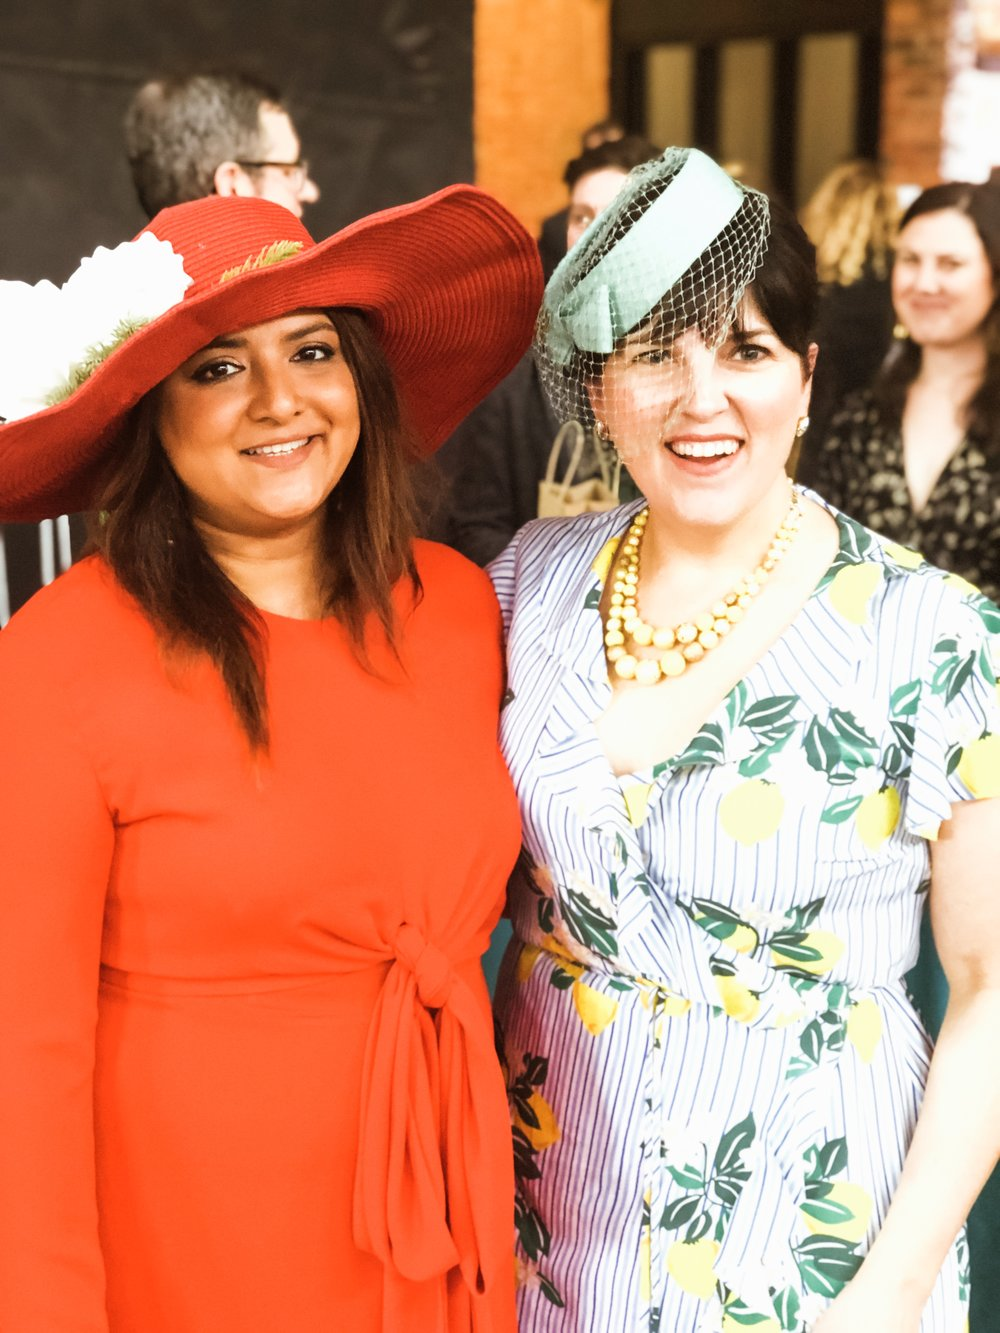 Love my friend  Charity's  dress and vintage hat! Her company  Studio Chartreuse  was one of the sponsors for the event.